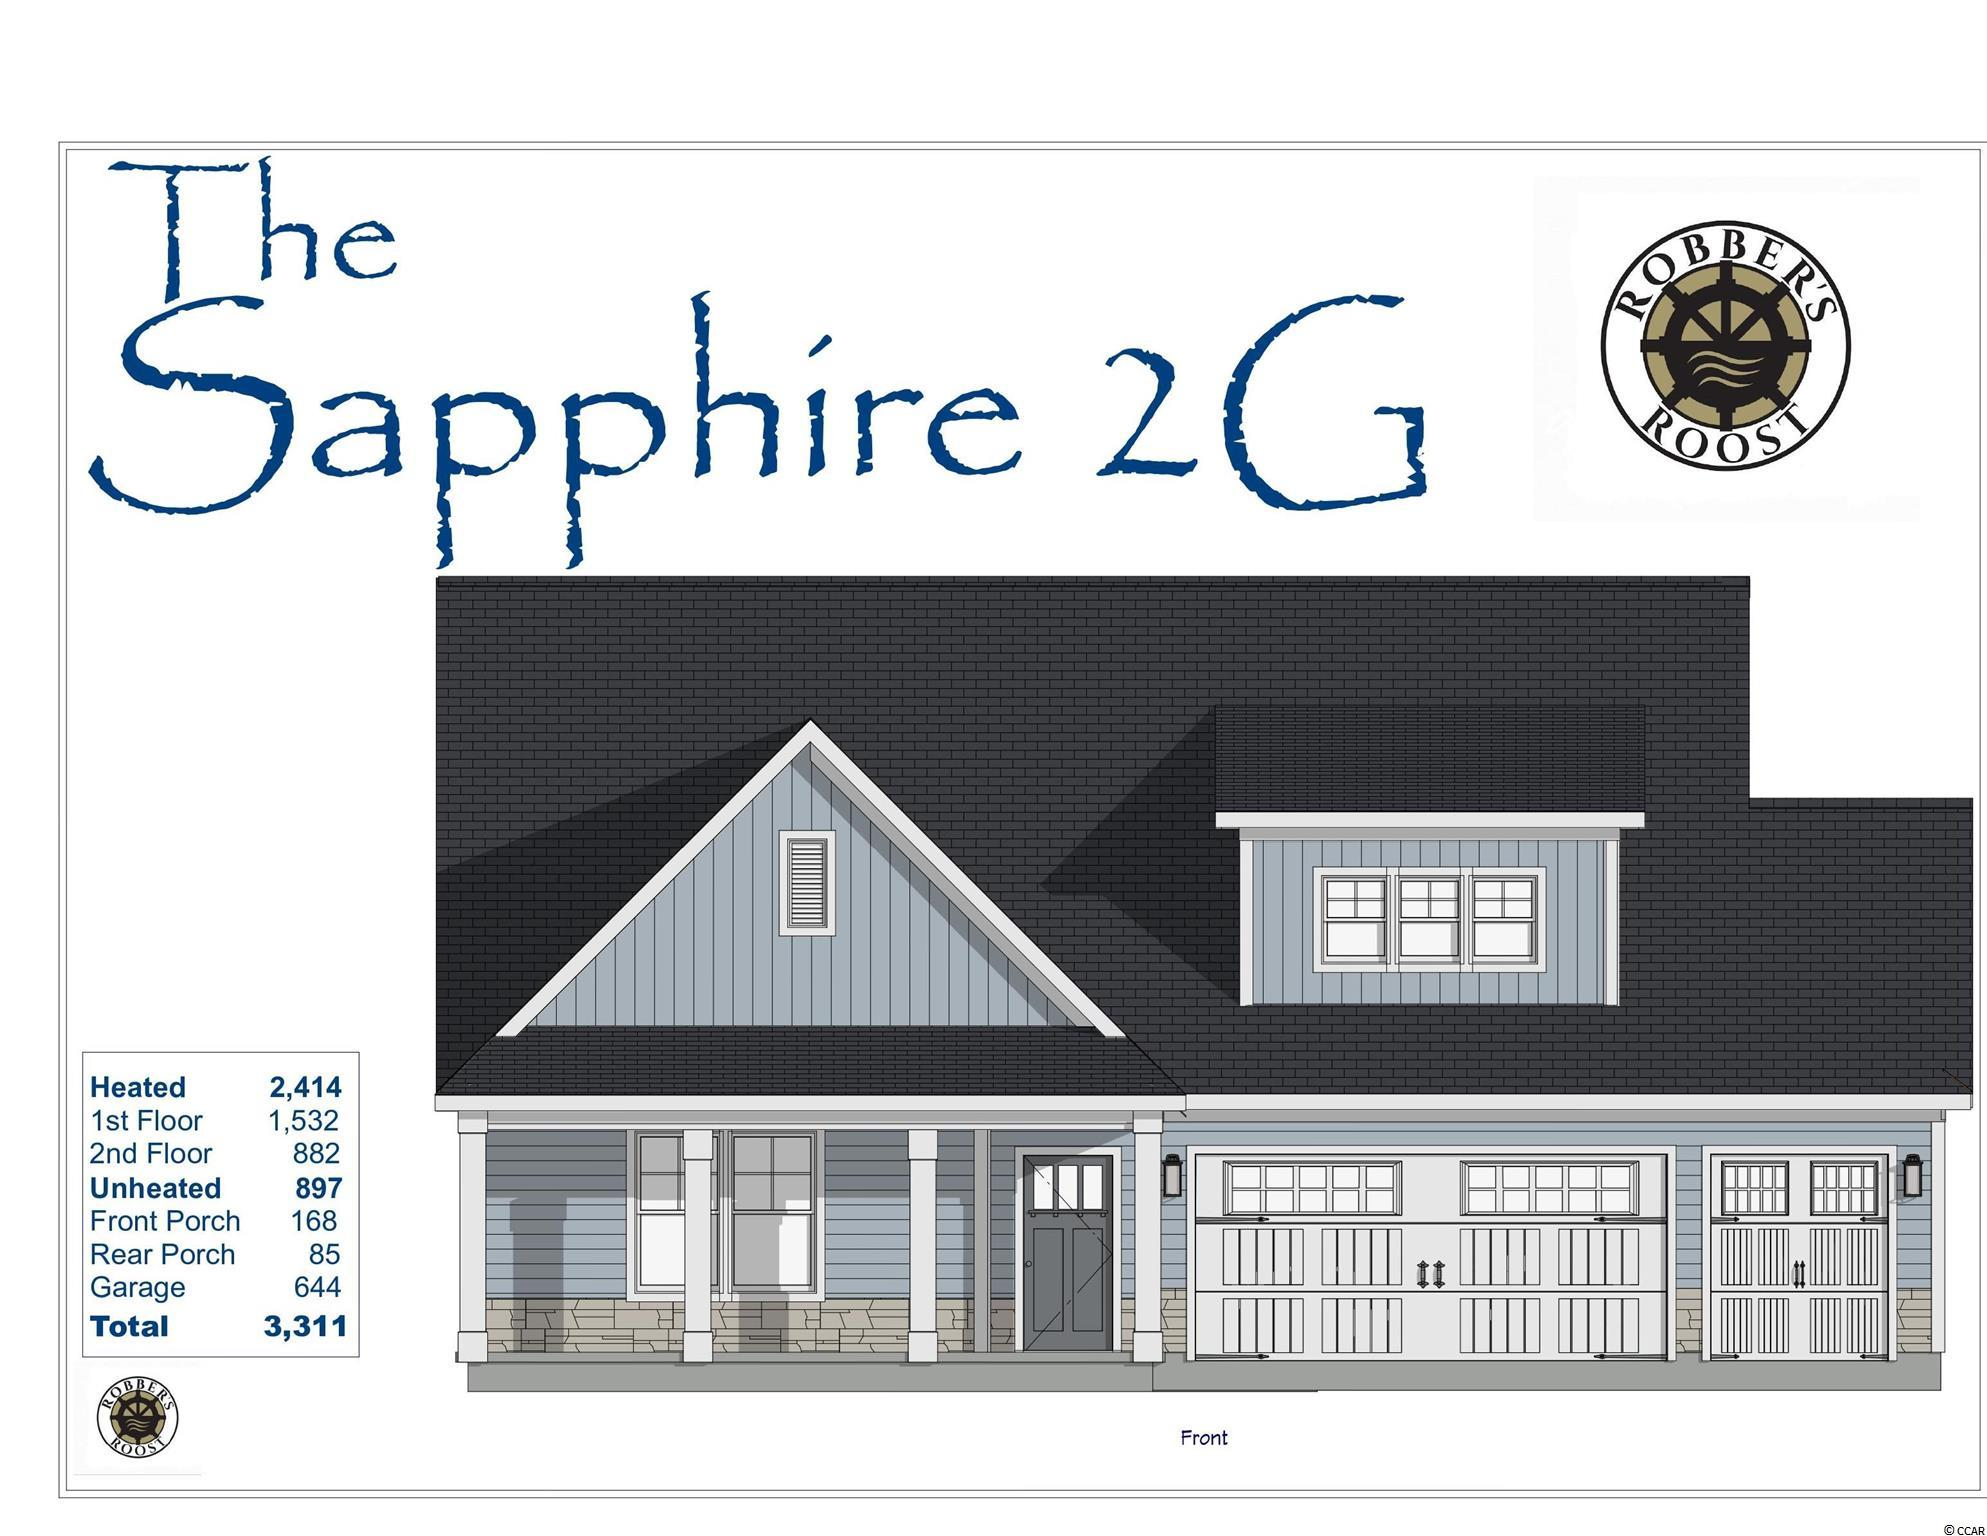 Our fantastic new Sapphire 2G Model has so much to offer ~ This 2 story 4br/2.5ba home features the owner's suite, large living room, eat-in kitchen, powder room, laundry room & rear porch on the first floor, 3 bedrooms w/ a full bath on the 2nd floor, beautiful front porch and a large 3 car garage! This open floor plan boasts a large living room with vaulted ceiling, kitchen with free standing gas convection range, over-the-range sensor microwave, energy star dishwasher, granite countertops, garbage disposal, pantry. Energy savings features include Low E windows, 14 Sear HVAC, Digital WiFi Programmable Thermostats, Tankless Gas Hot Water Heater & 200 Amp electrical service, security system with keyless entry.  Too much to mention so come see for yourself! From the time you step onto the quaint from porch & open the front door you'll see the quality of construction. 9' flat ceilings, wide plank restoration flooring, luxurious carpet in bedrooms.  Additionally, Robber's Roost at North Myrtle Beach is a natural gas community east of Hwy 17 with a community pool coming for the 2021 swimming season & is located within walking, bicycle or golf cart distance to Tilghman Beach, the beautiful Atlantic Ocean w/ 60 miles of white sandy beaches and is close to Coastal North Town Center (shopping, dining, beauty, pets), Shag dance capital Main St., golf, boating/fishing in the ICW, entertainment and all the amenities of living in Coastal South Carolina. Whether a primary residence or your vacation get-a-way, Don't Miss ~ come live the dream!  (*Many new plans to choose from!)